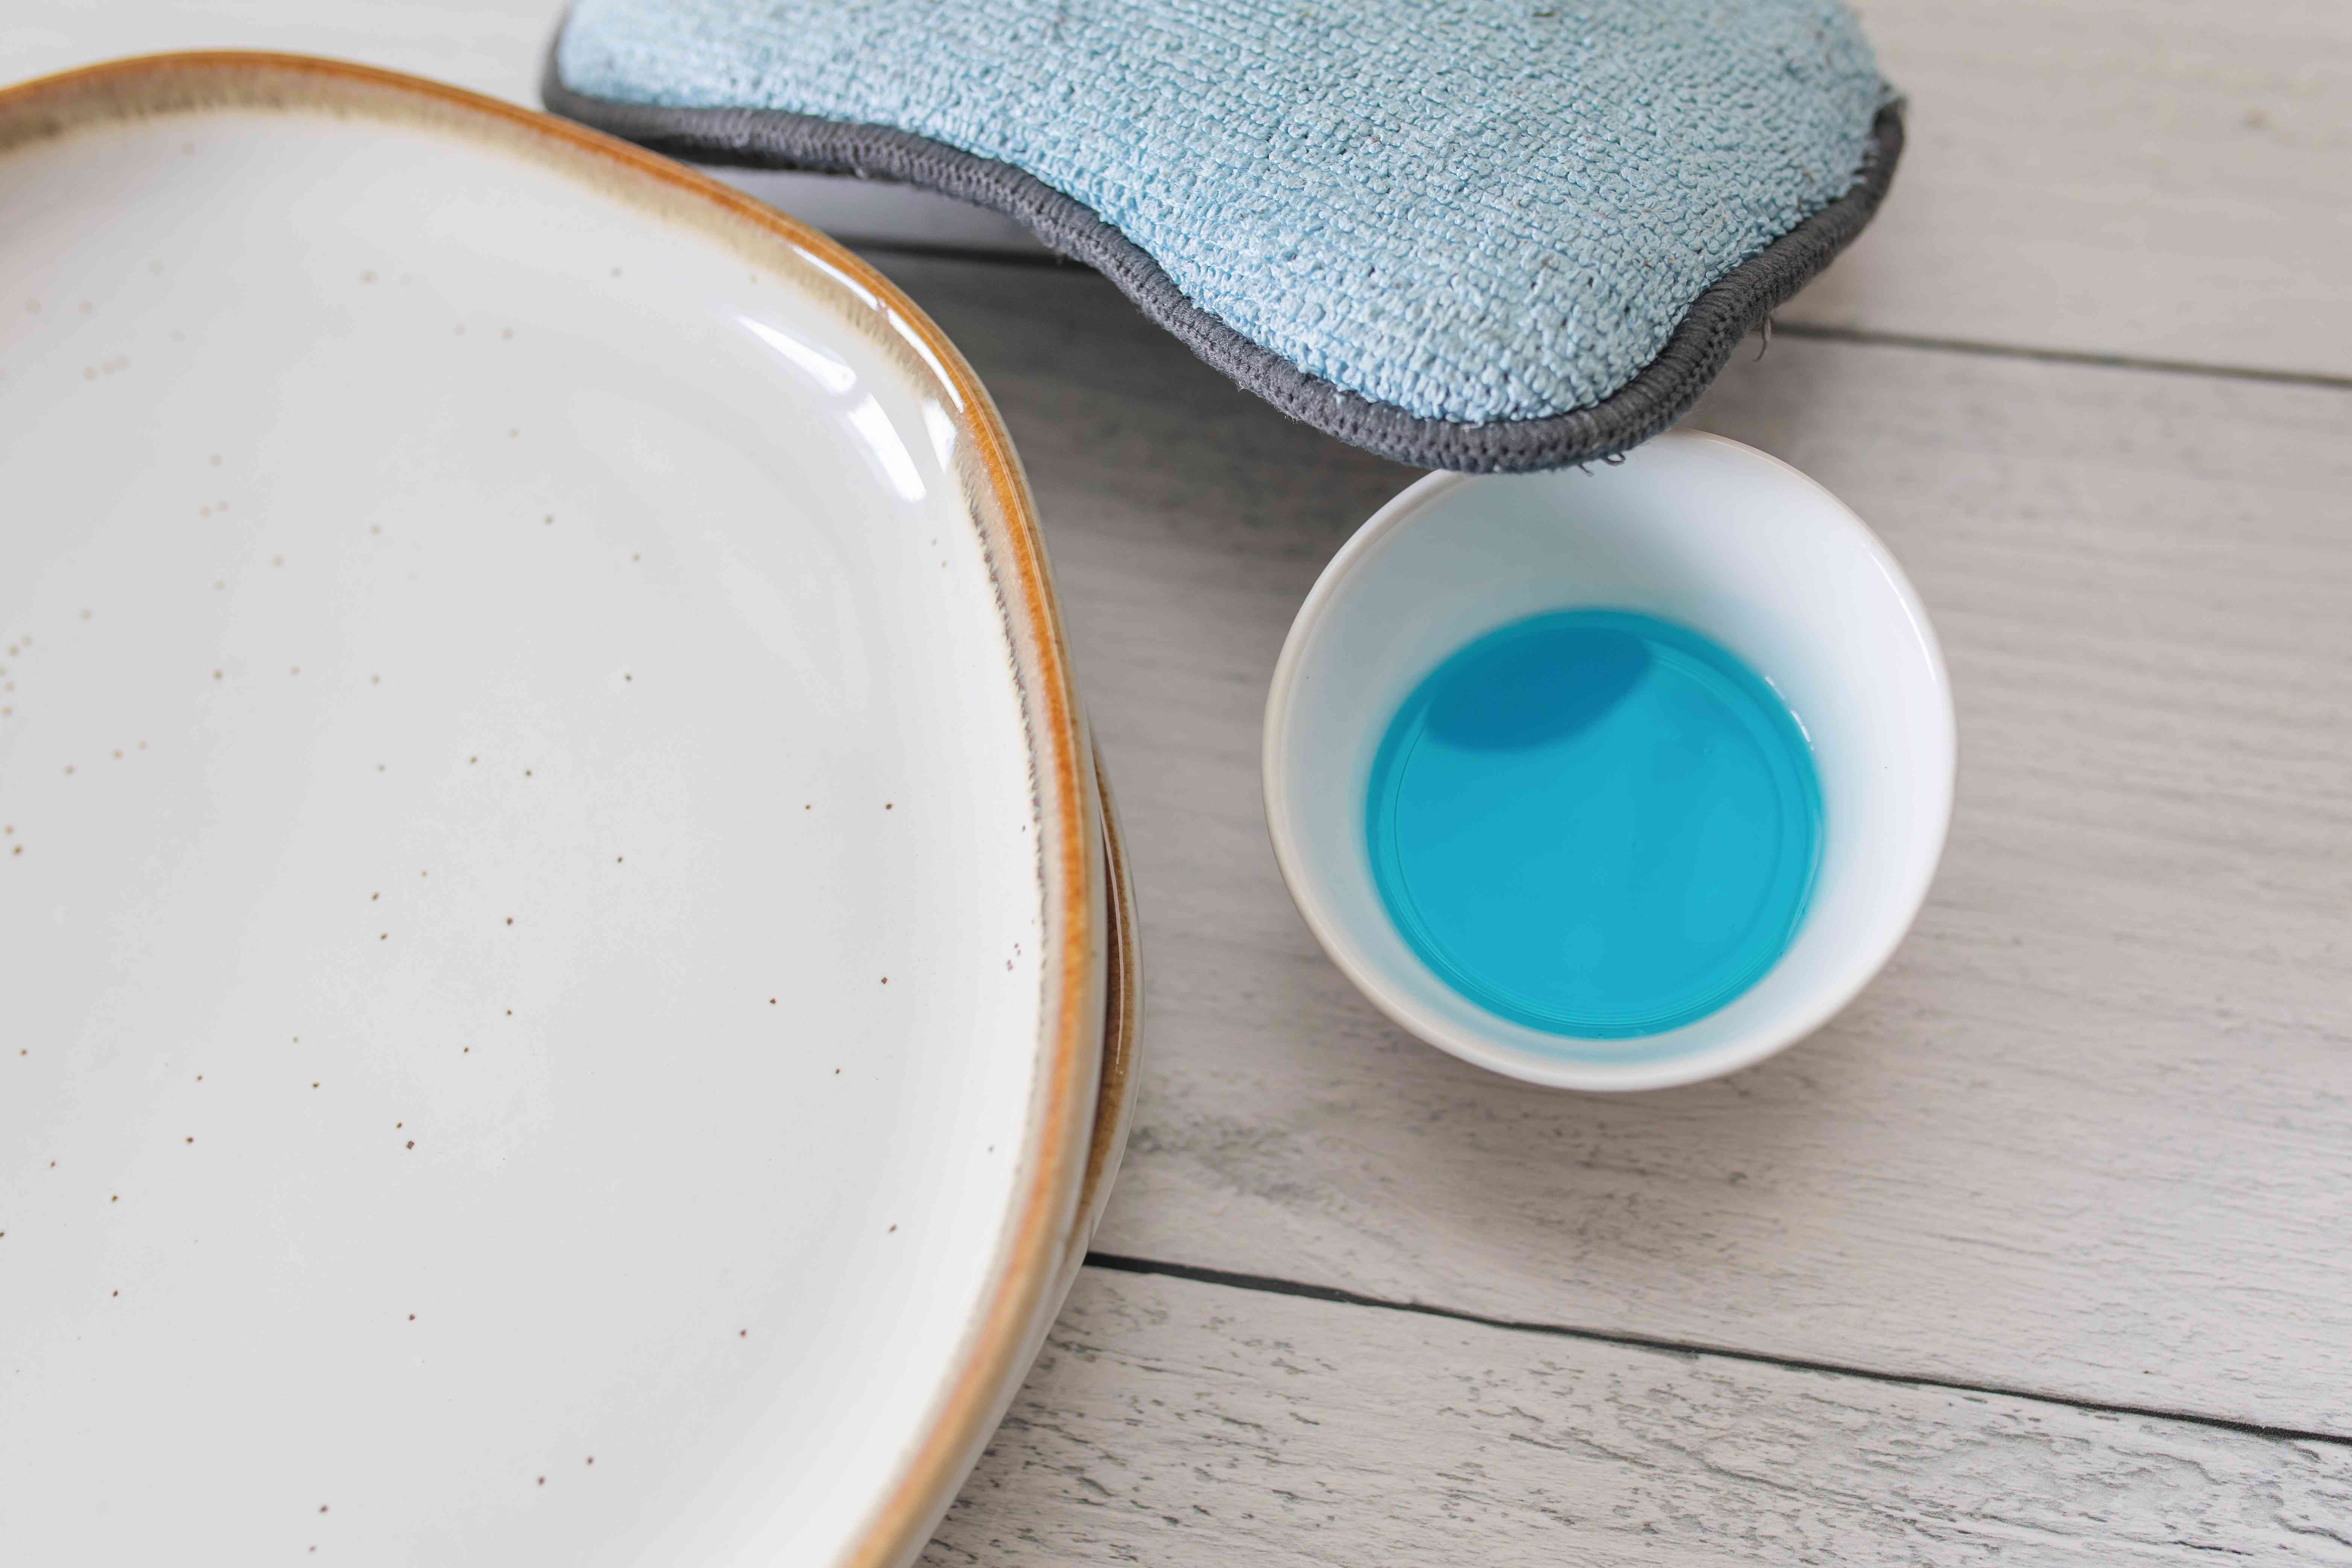 small cup of dish soap next to plates